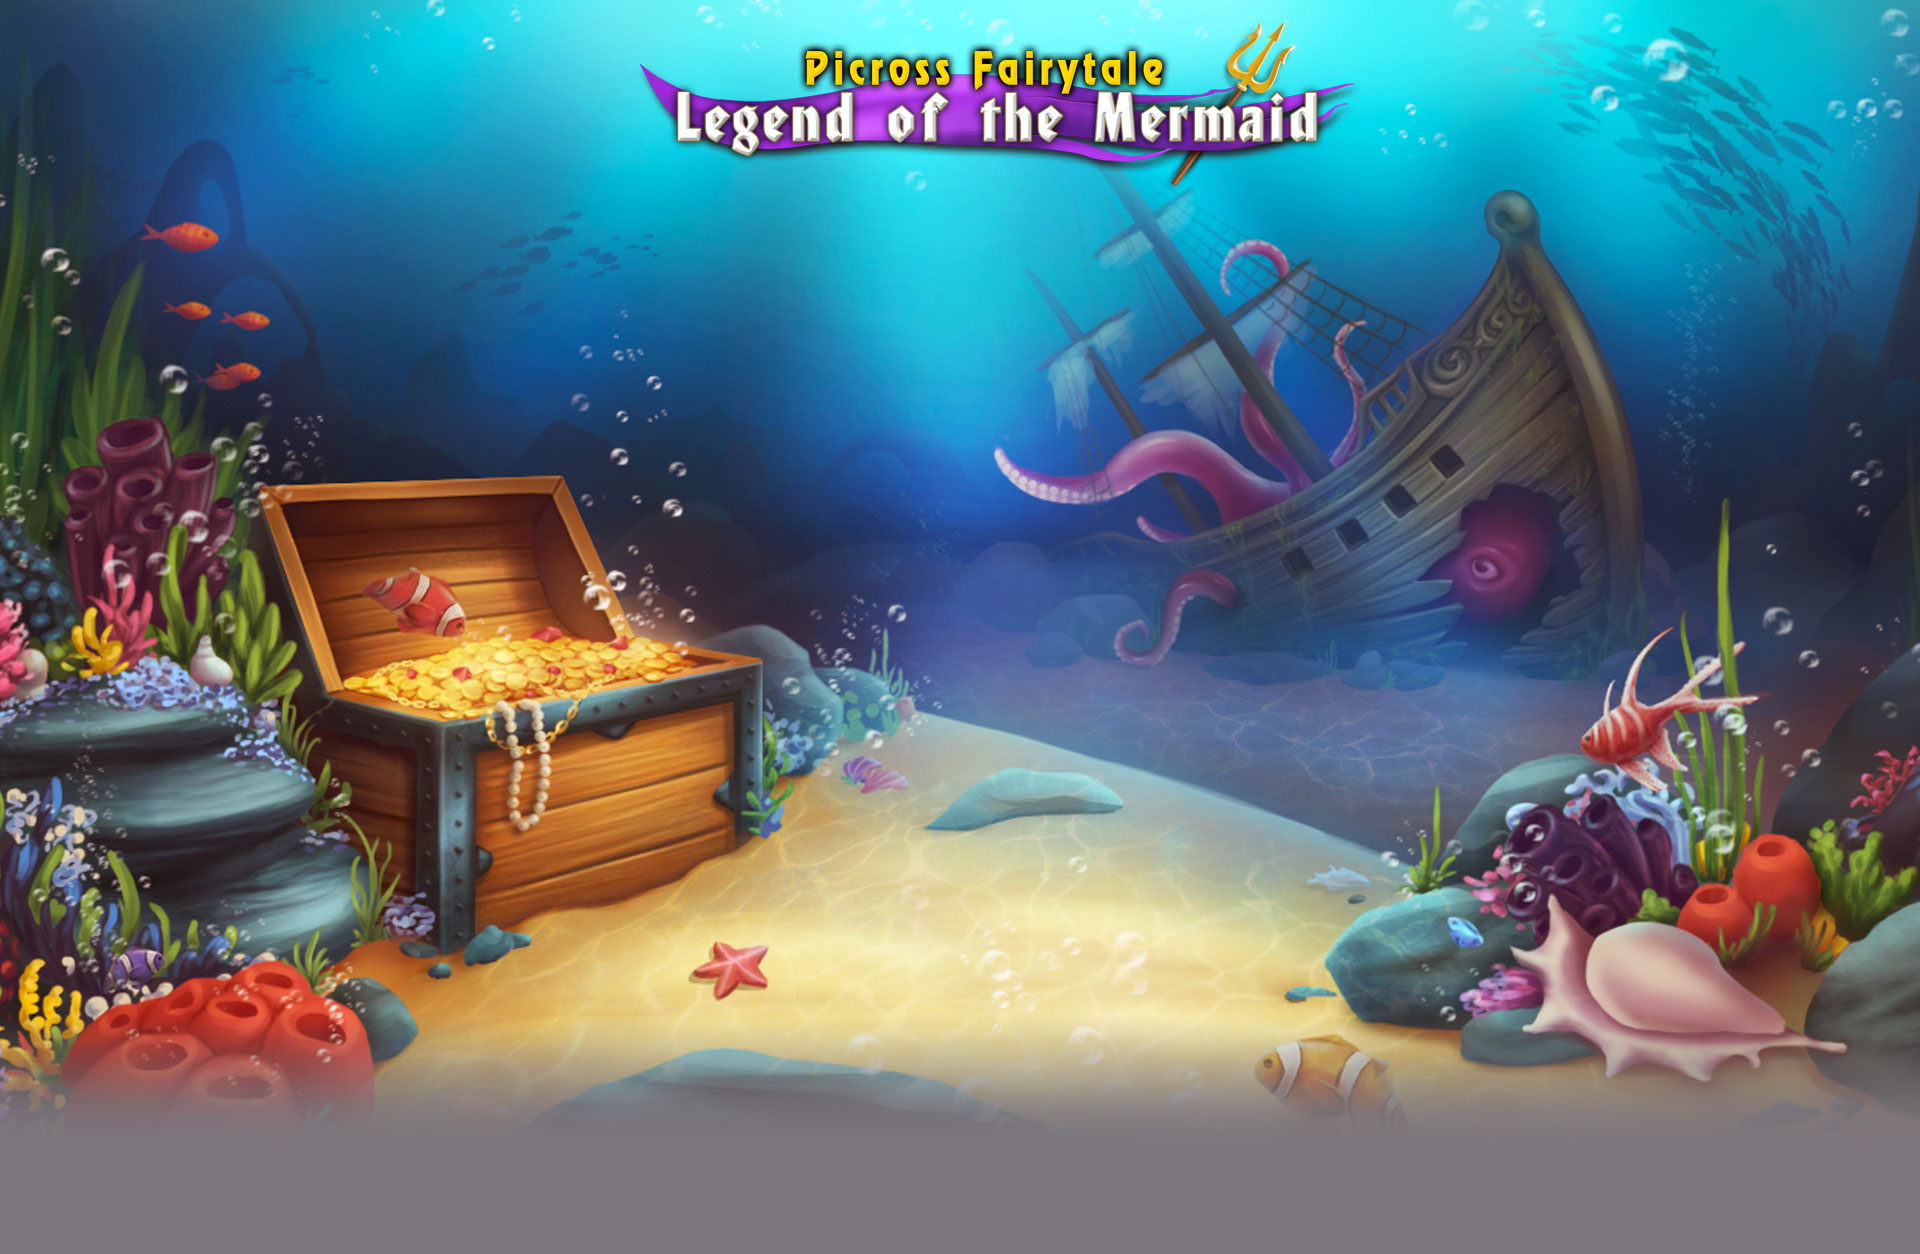 Picrosss Fairytale Legend of the Mermaid